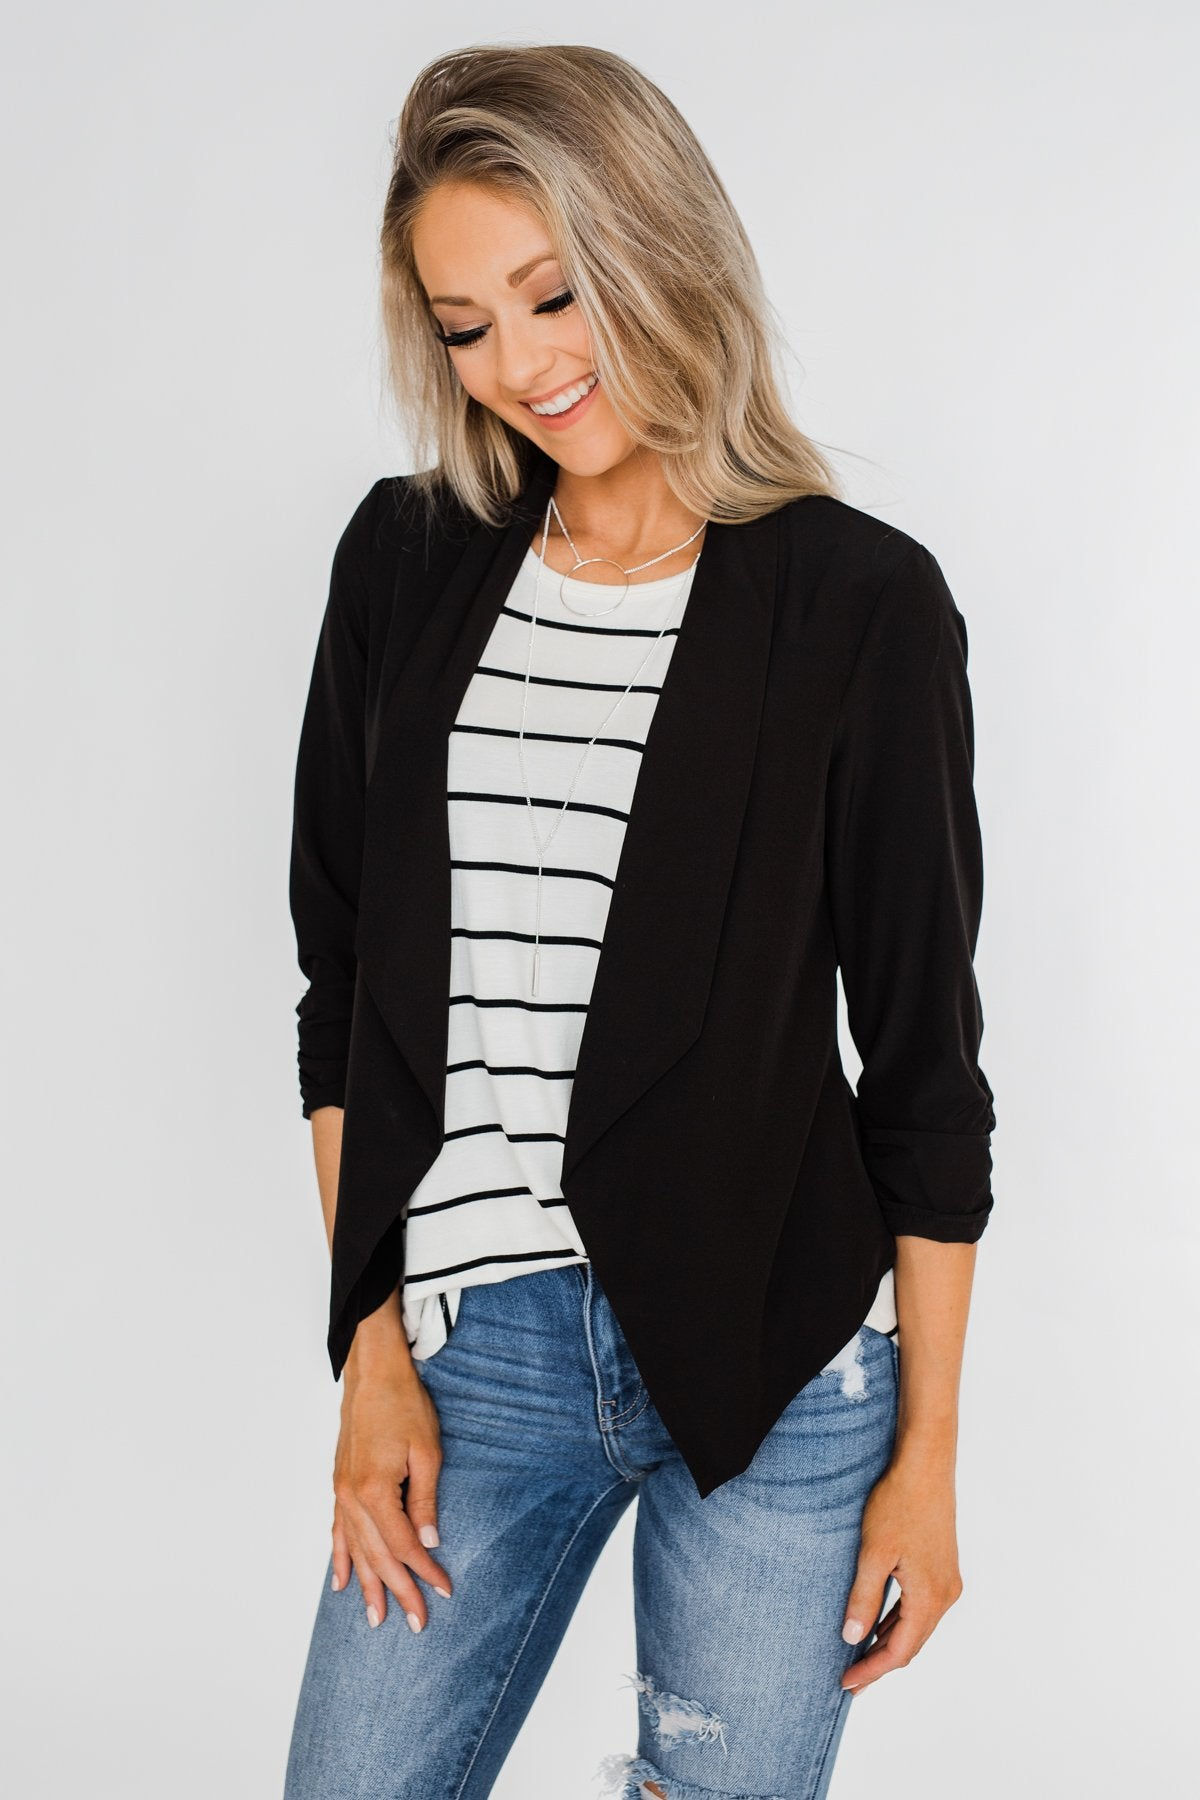 Keep It Professional Blazer- Black